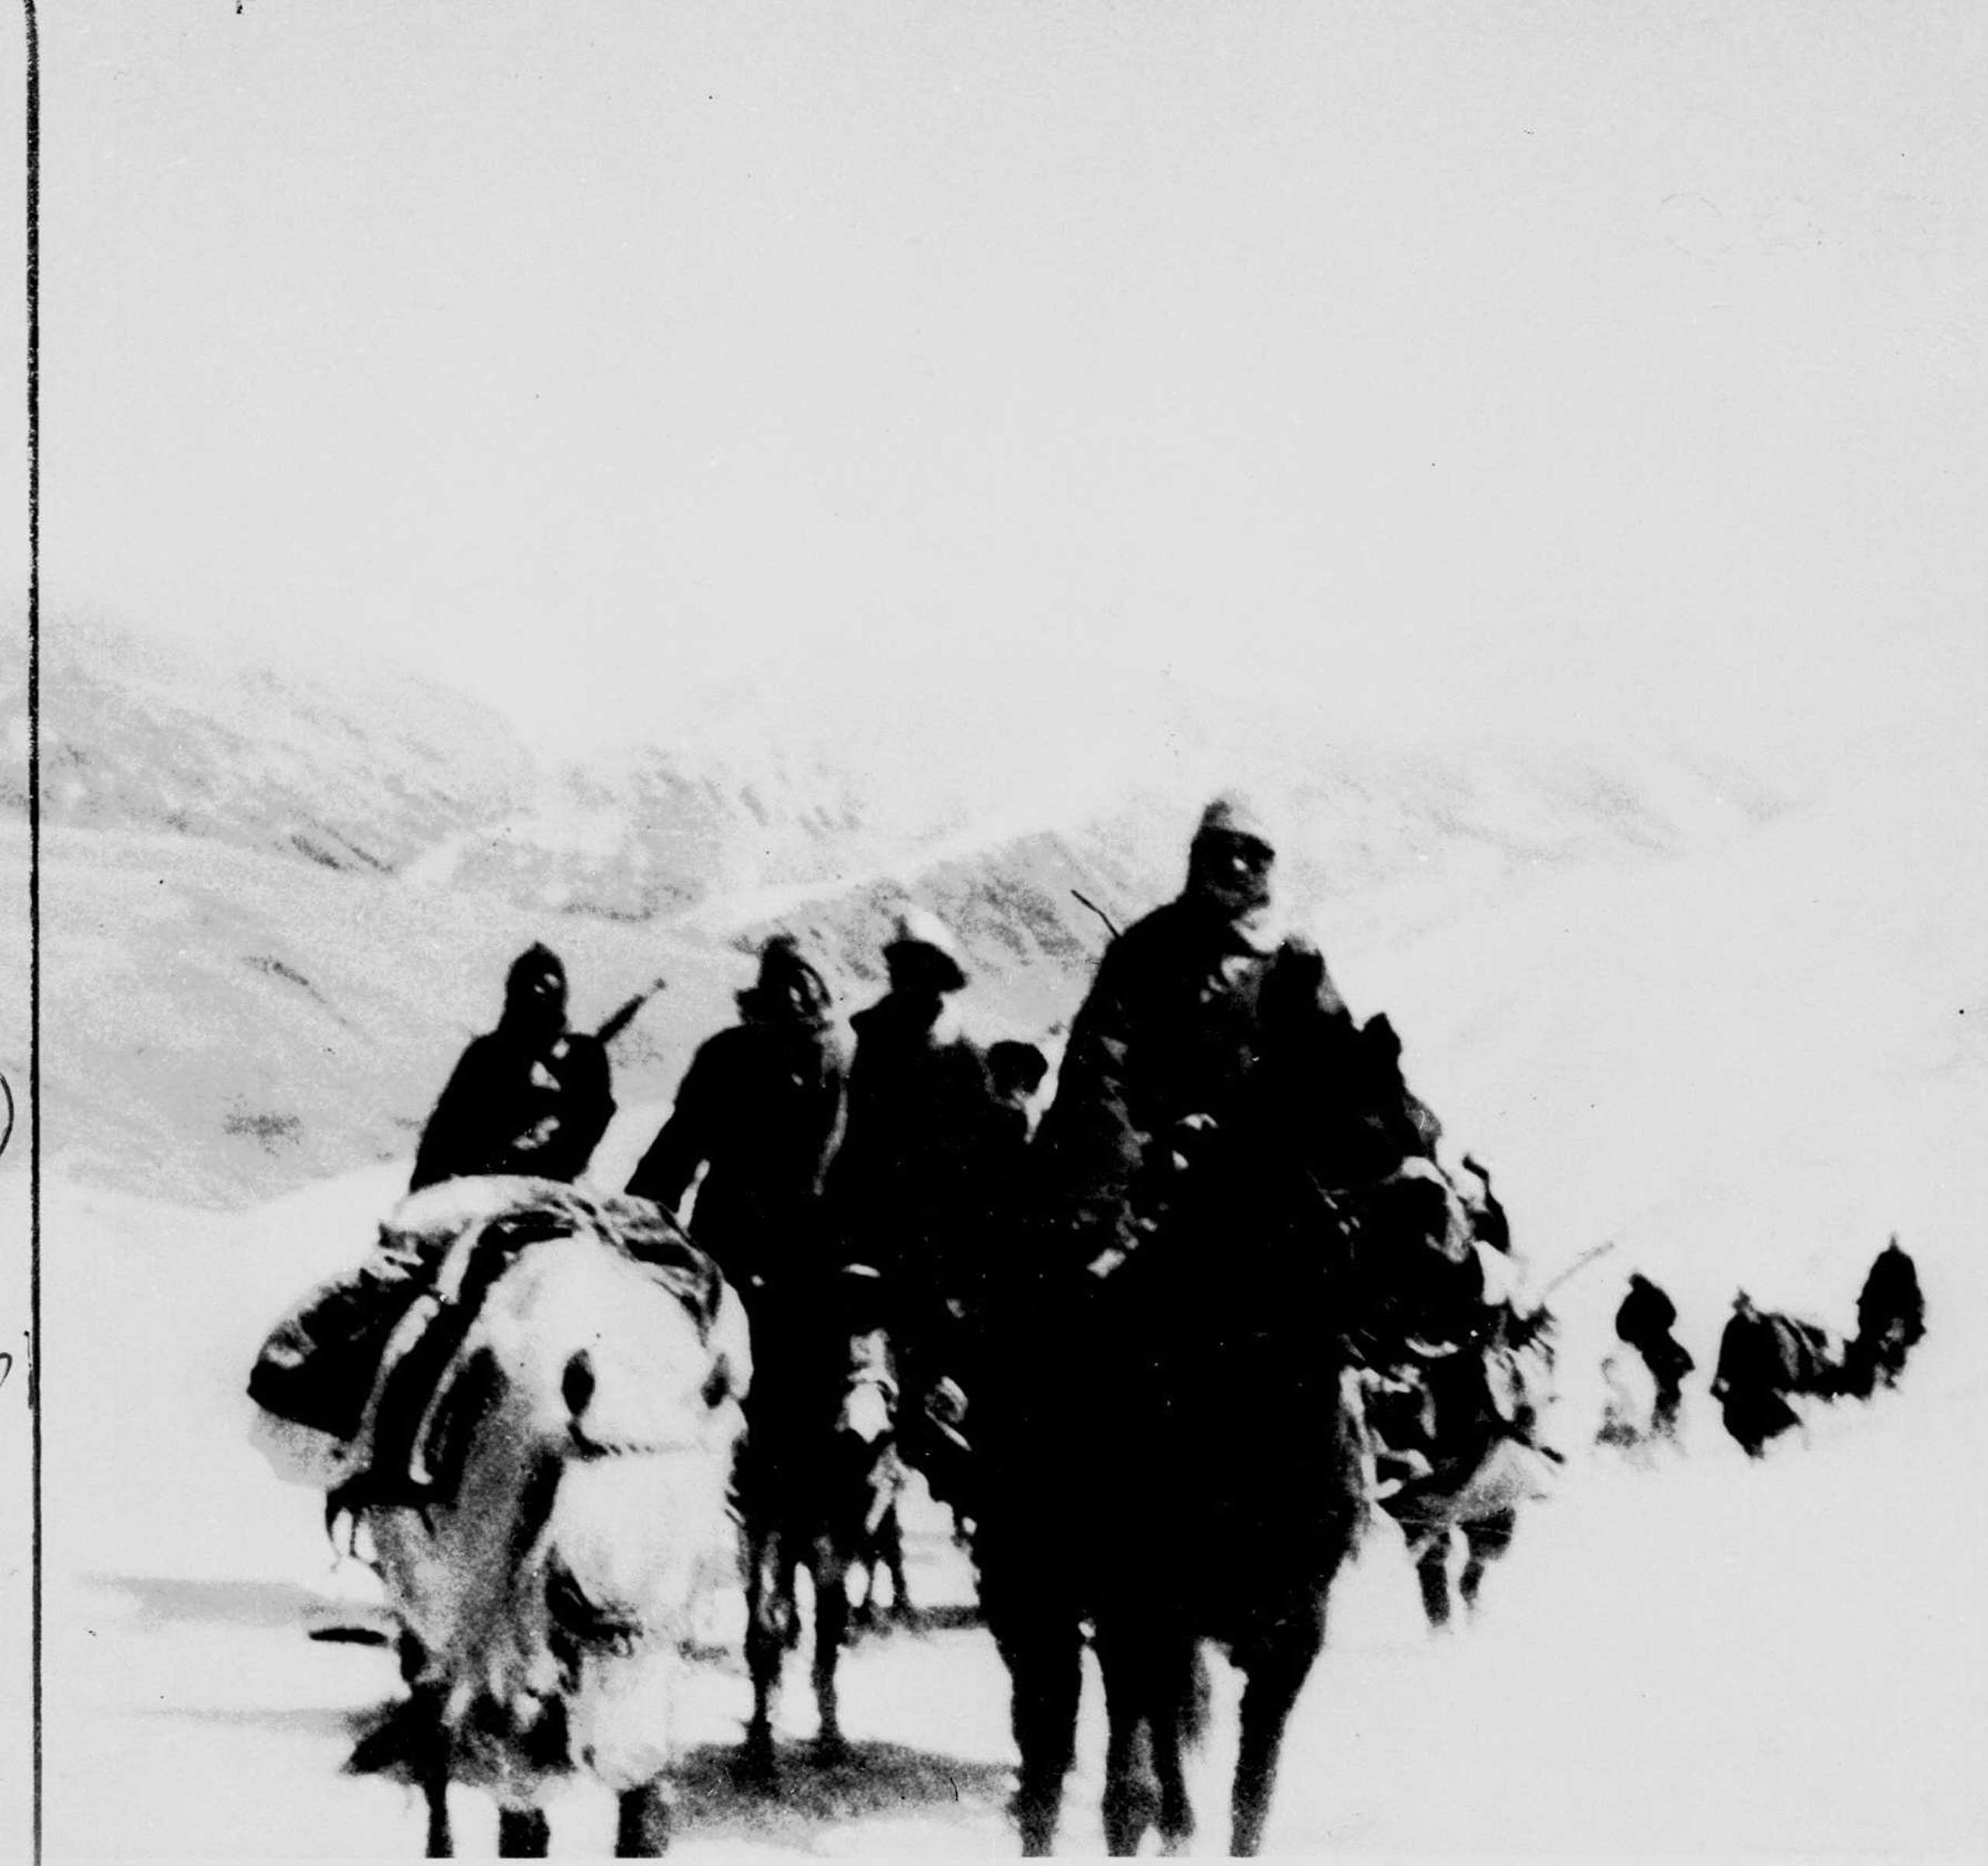 Averaging 12 miles a day through the Himalayas, the Dalai Lama is shown journeying through the Karpo Pass, one of the highest on the flight route of the 23-year-old ruler from Lhasa. His flight began on March 17, 1959. Here the escape party is seen on March 28, three days before reaching sanctuary in the free zone of India.